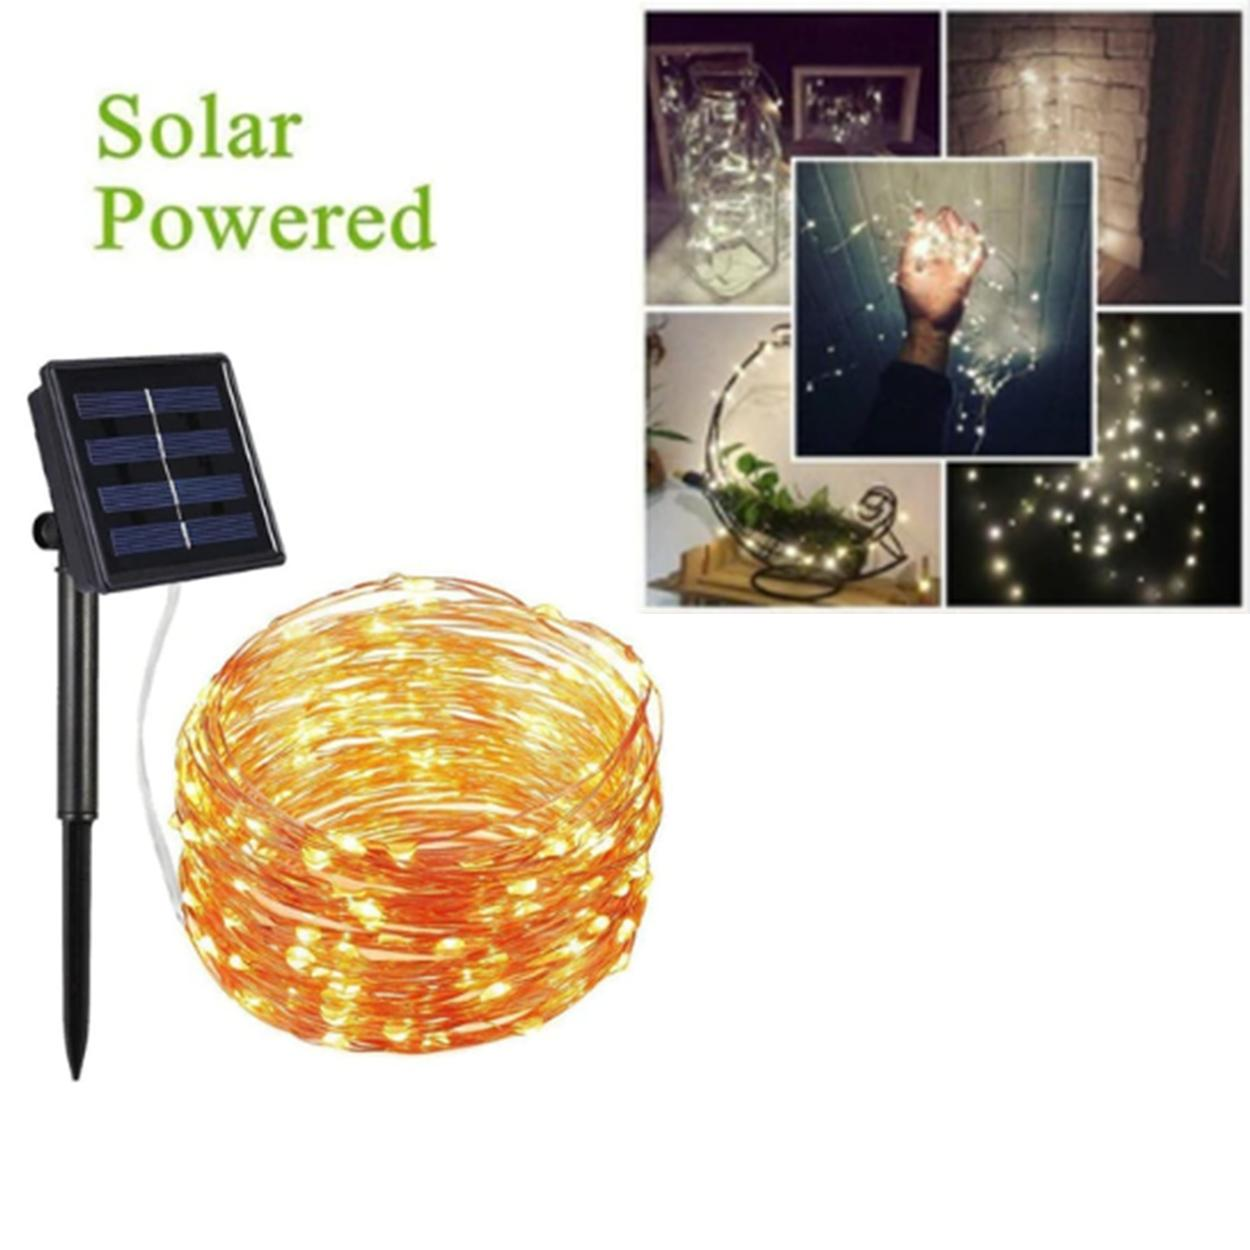 Outdoor Lighting For Sale Lights Prices Brands Review Light Unit And Method On Wiring A Switch To An Outside 10m Waterproof Solar Powered Copper Wire Led String Fairy Christmas Garden Holiday